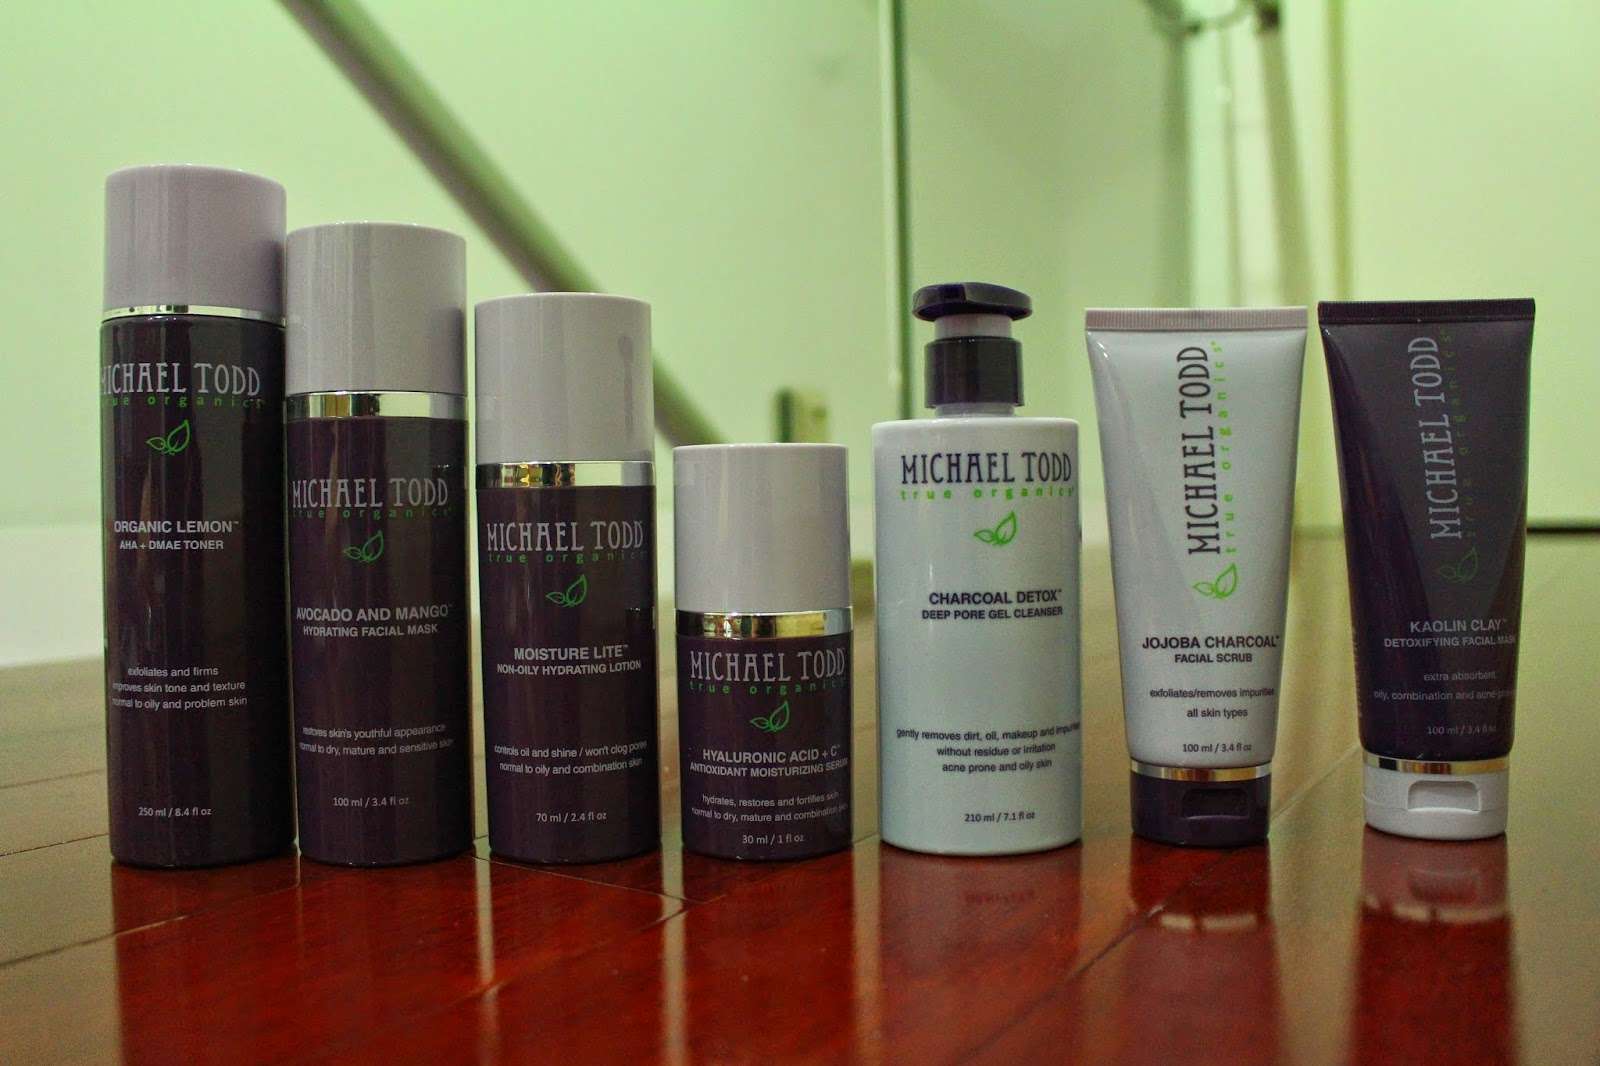 Michael Todd Skincare Regimen - Oily/Combination Troubled Skin